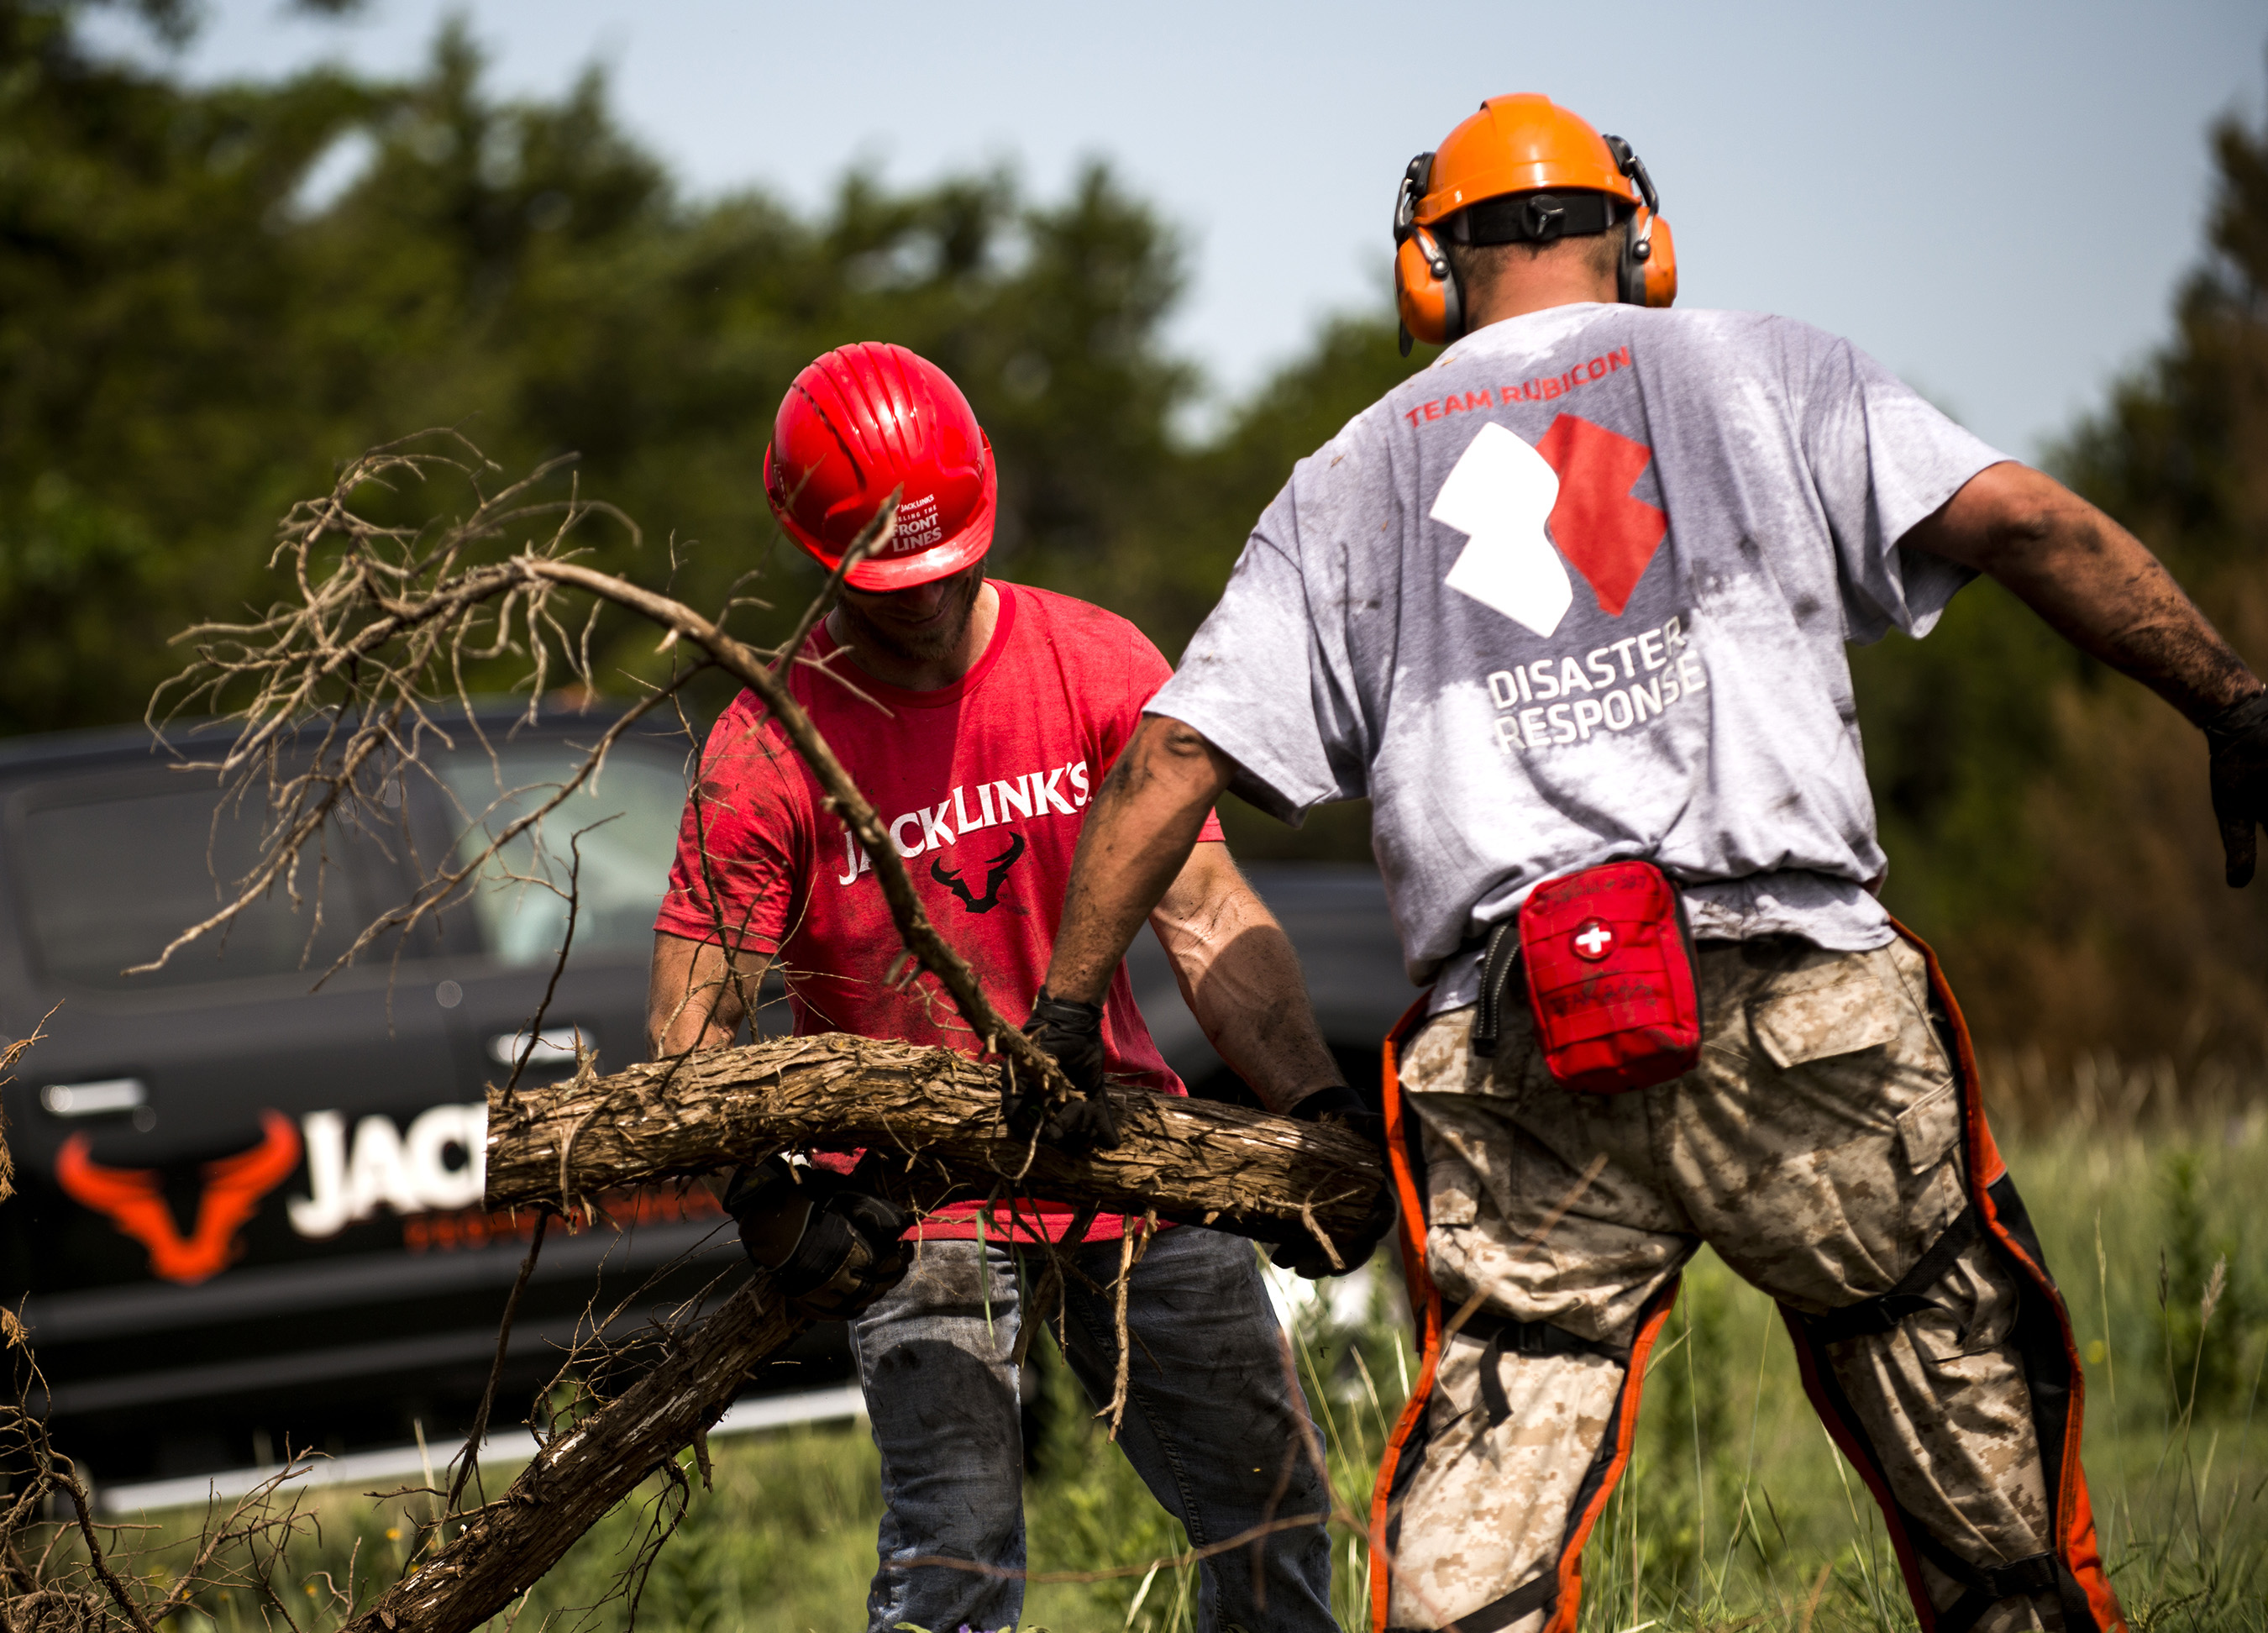 Team Rubicon and Jack Link's team up to support communities struck by disaster.